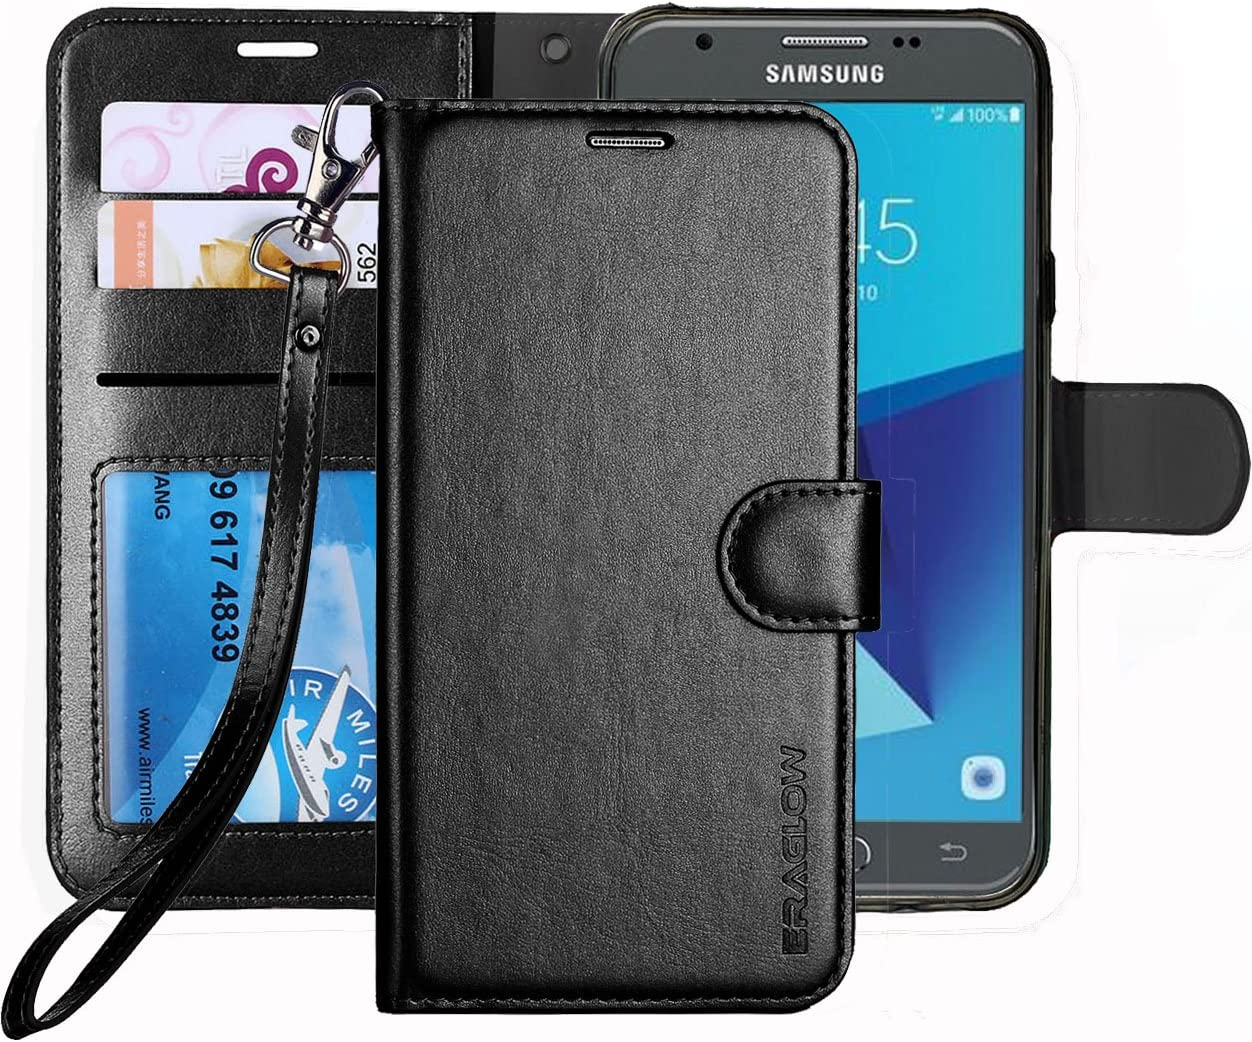 Galaxy J7 V / J7 Perx / J7 Sky Pro / J7 Prime / J7 2017 / Galaxy Halo Case, ERAGLOW Luxury PU Leather Wallet Flip Protective Case Cover with Card Slots and Stand for Samsung Galaxy J7 2017 (Black)